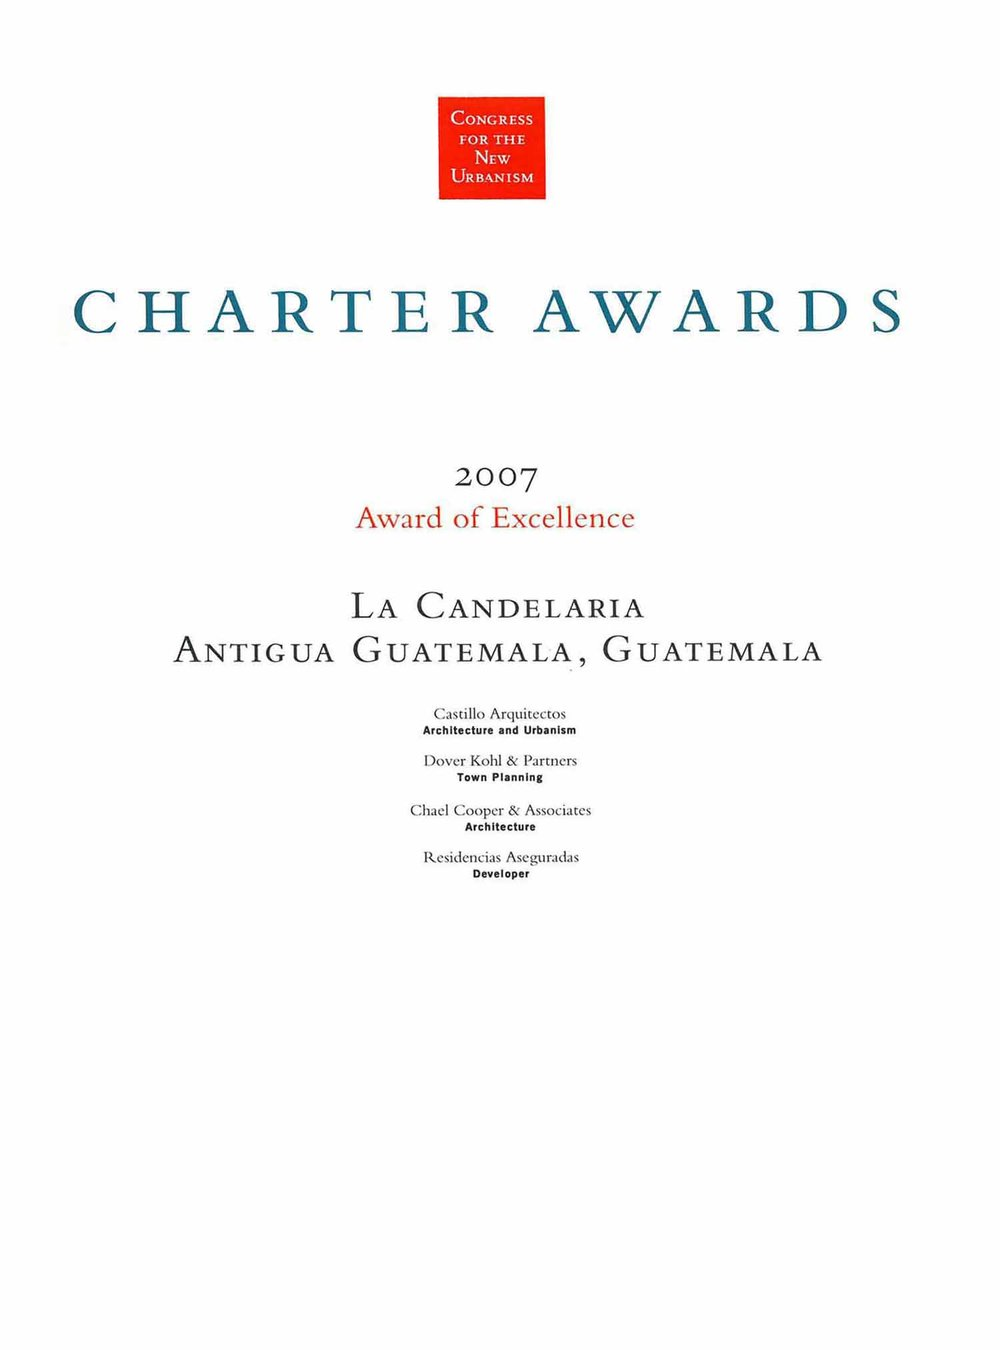 2007-Chapter Awars- of exellence-La Candelaria Antigua Guatemala.jpg